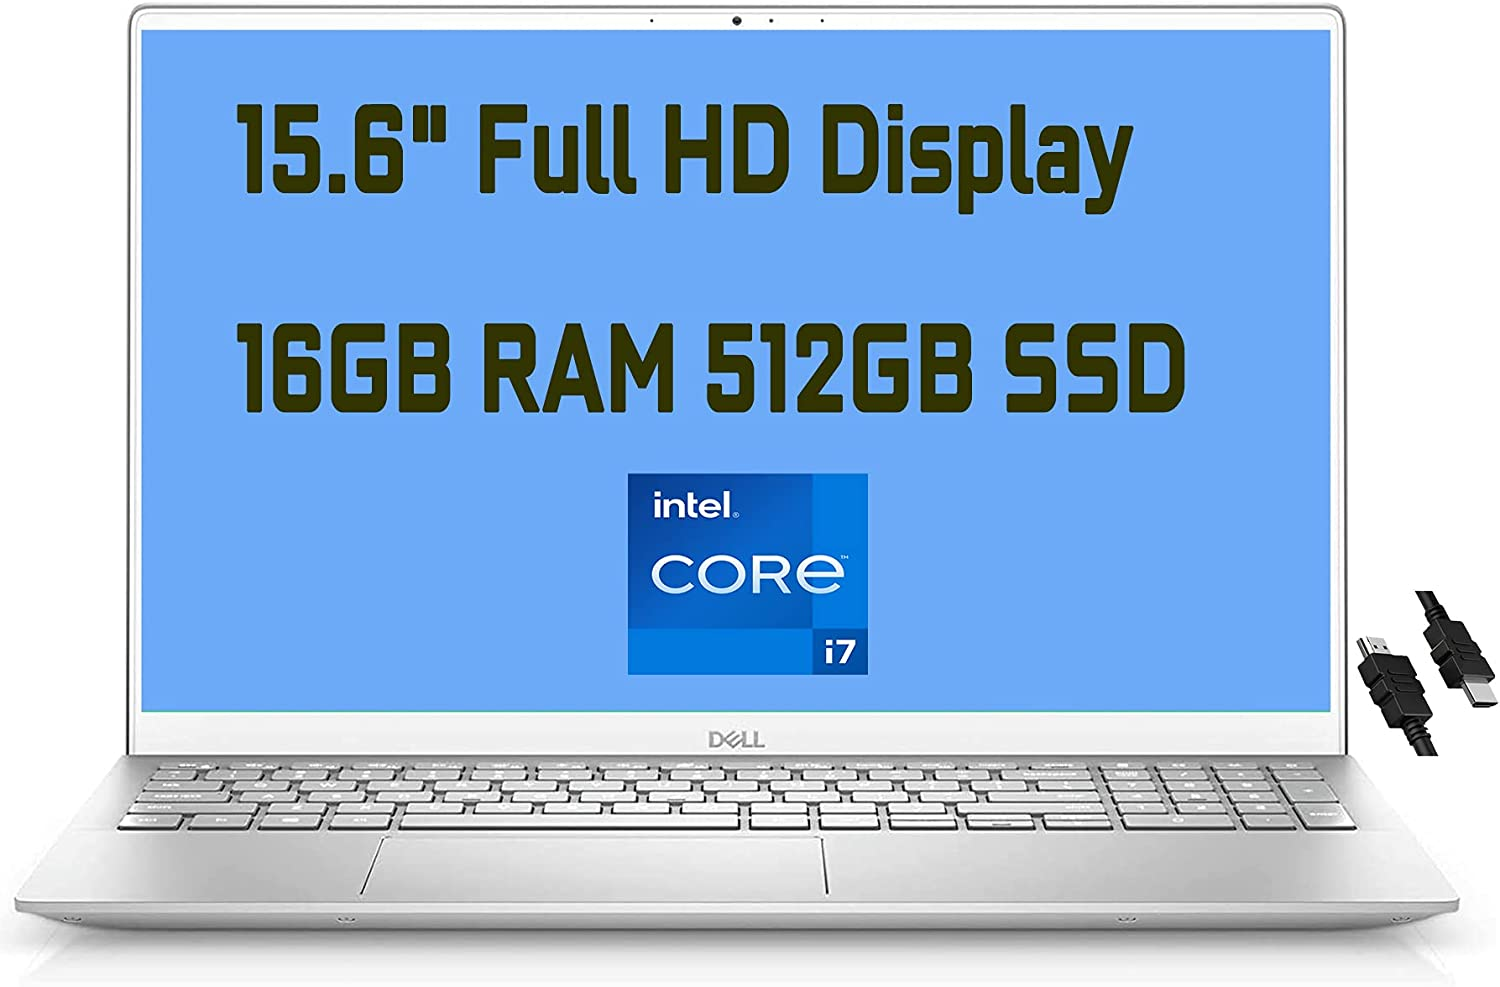 2021 Flagship Dell Inspiron 15 5000 Laptop 15.6